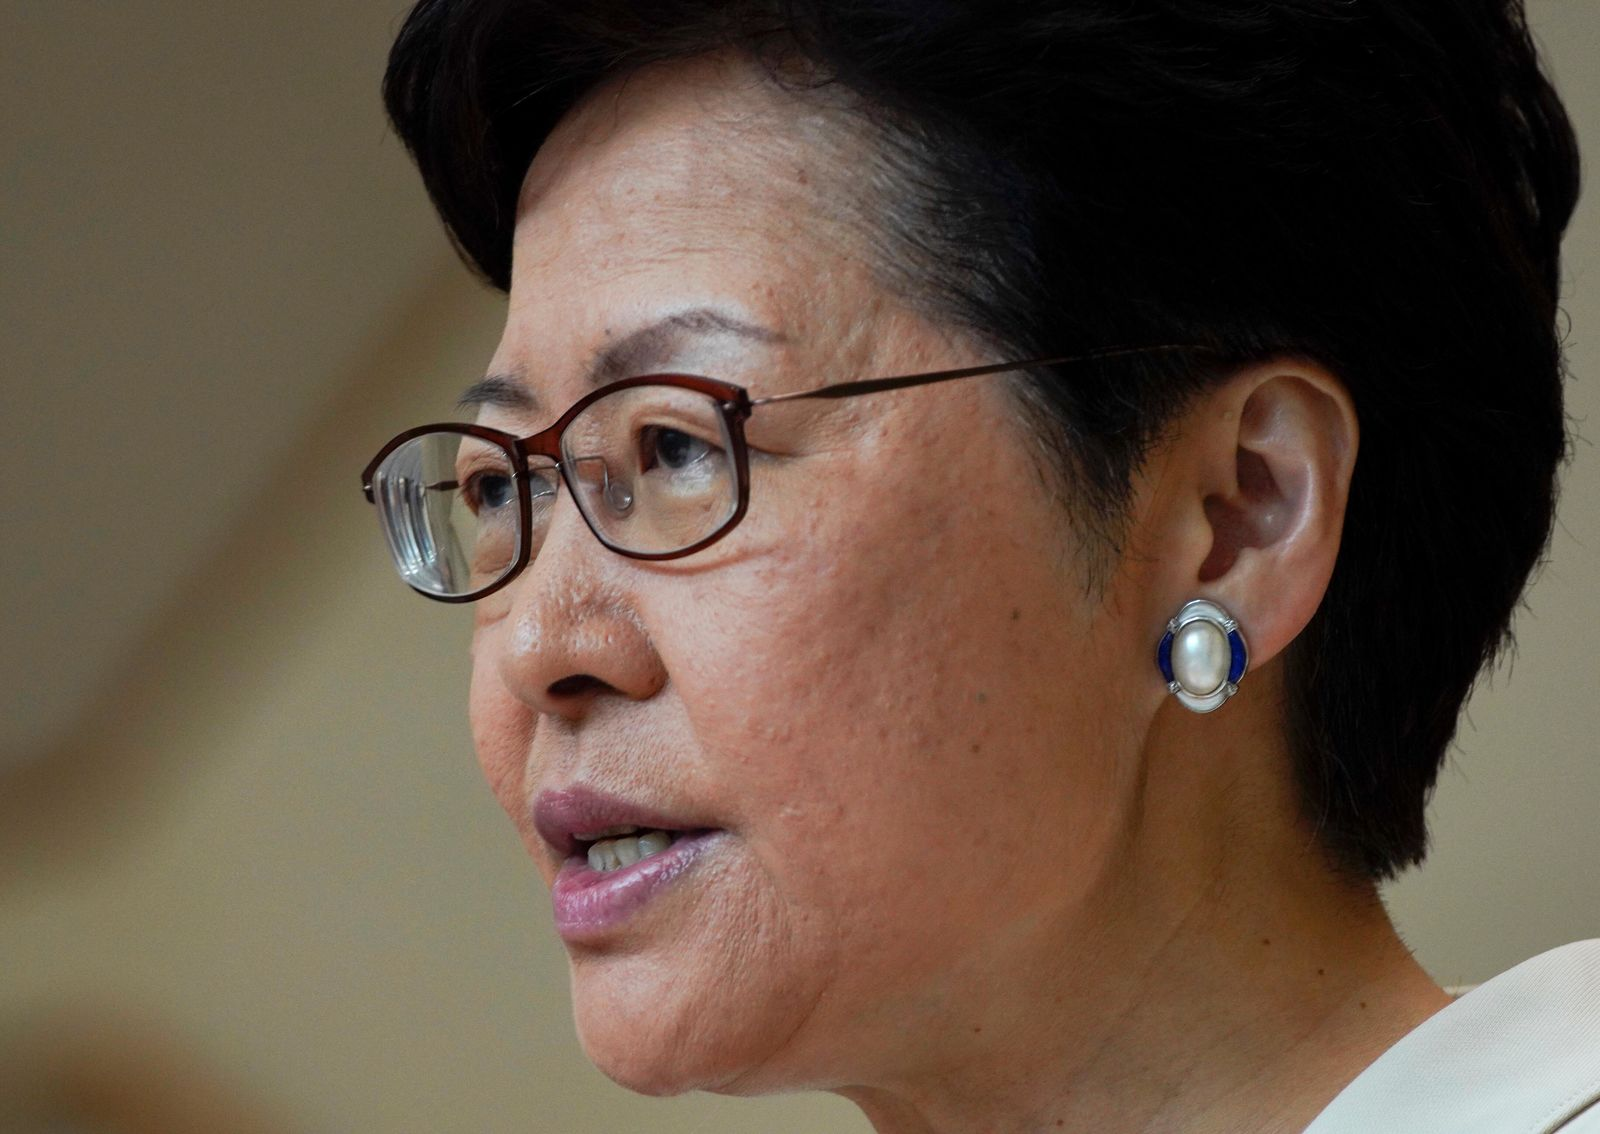 Hong Kong Chief Executive Carrie Lam speaks to reporters' during a press conference at the government building in Hong Kong, Tuesday, Sept. 17, 2019. (AP Photo/Vincent Yu)